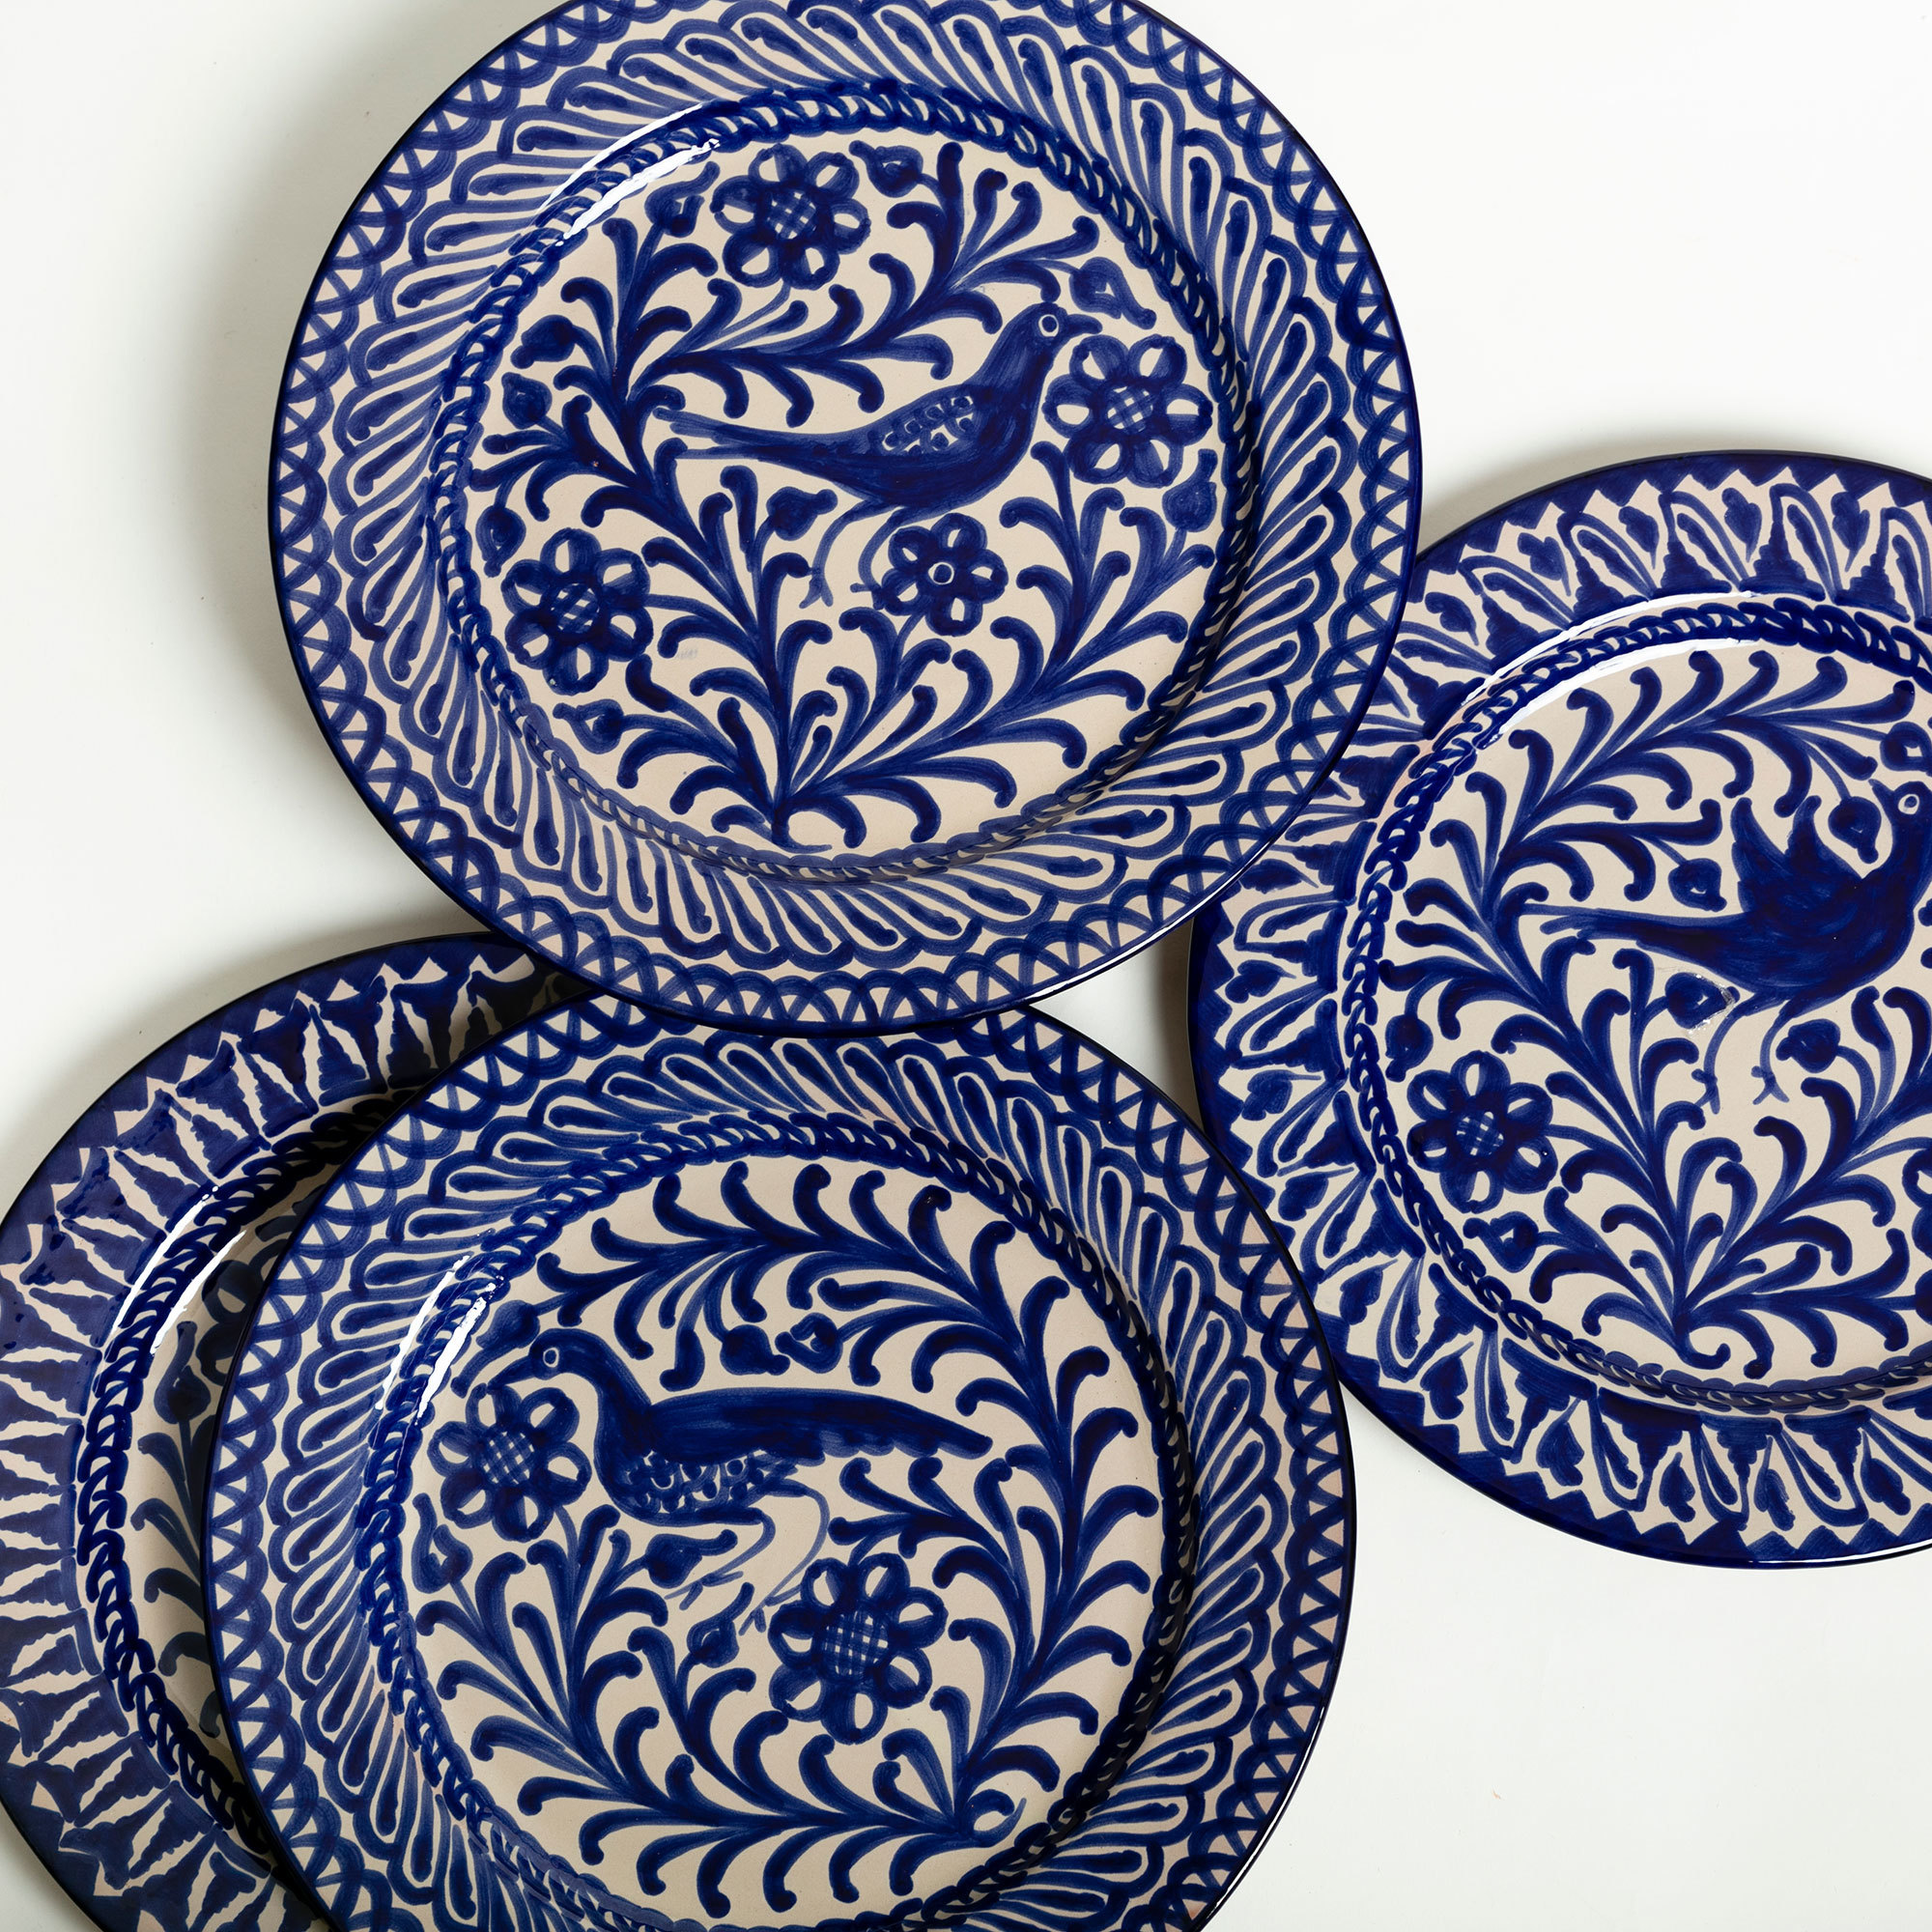 Casa Lopez Hand Painted Blue Ceramic Classic Plate The Garnered